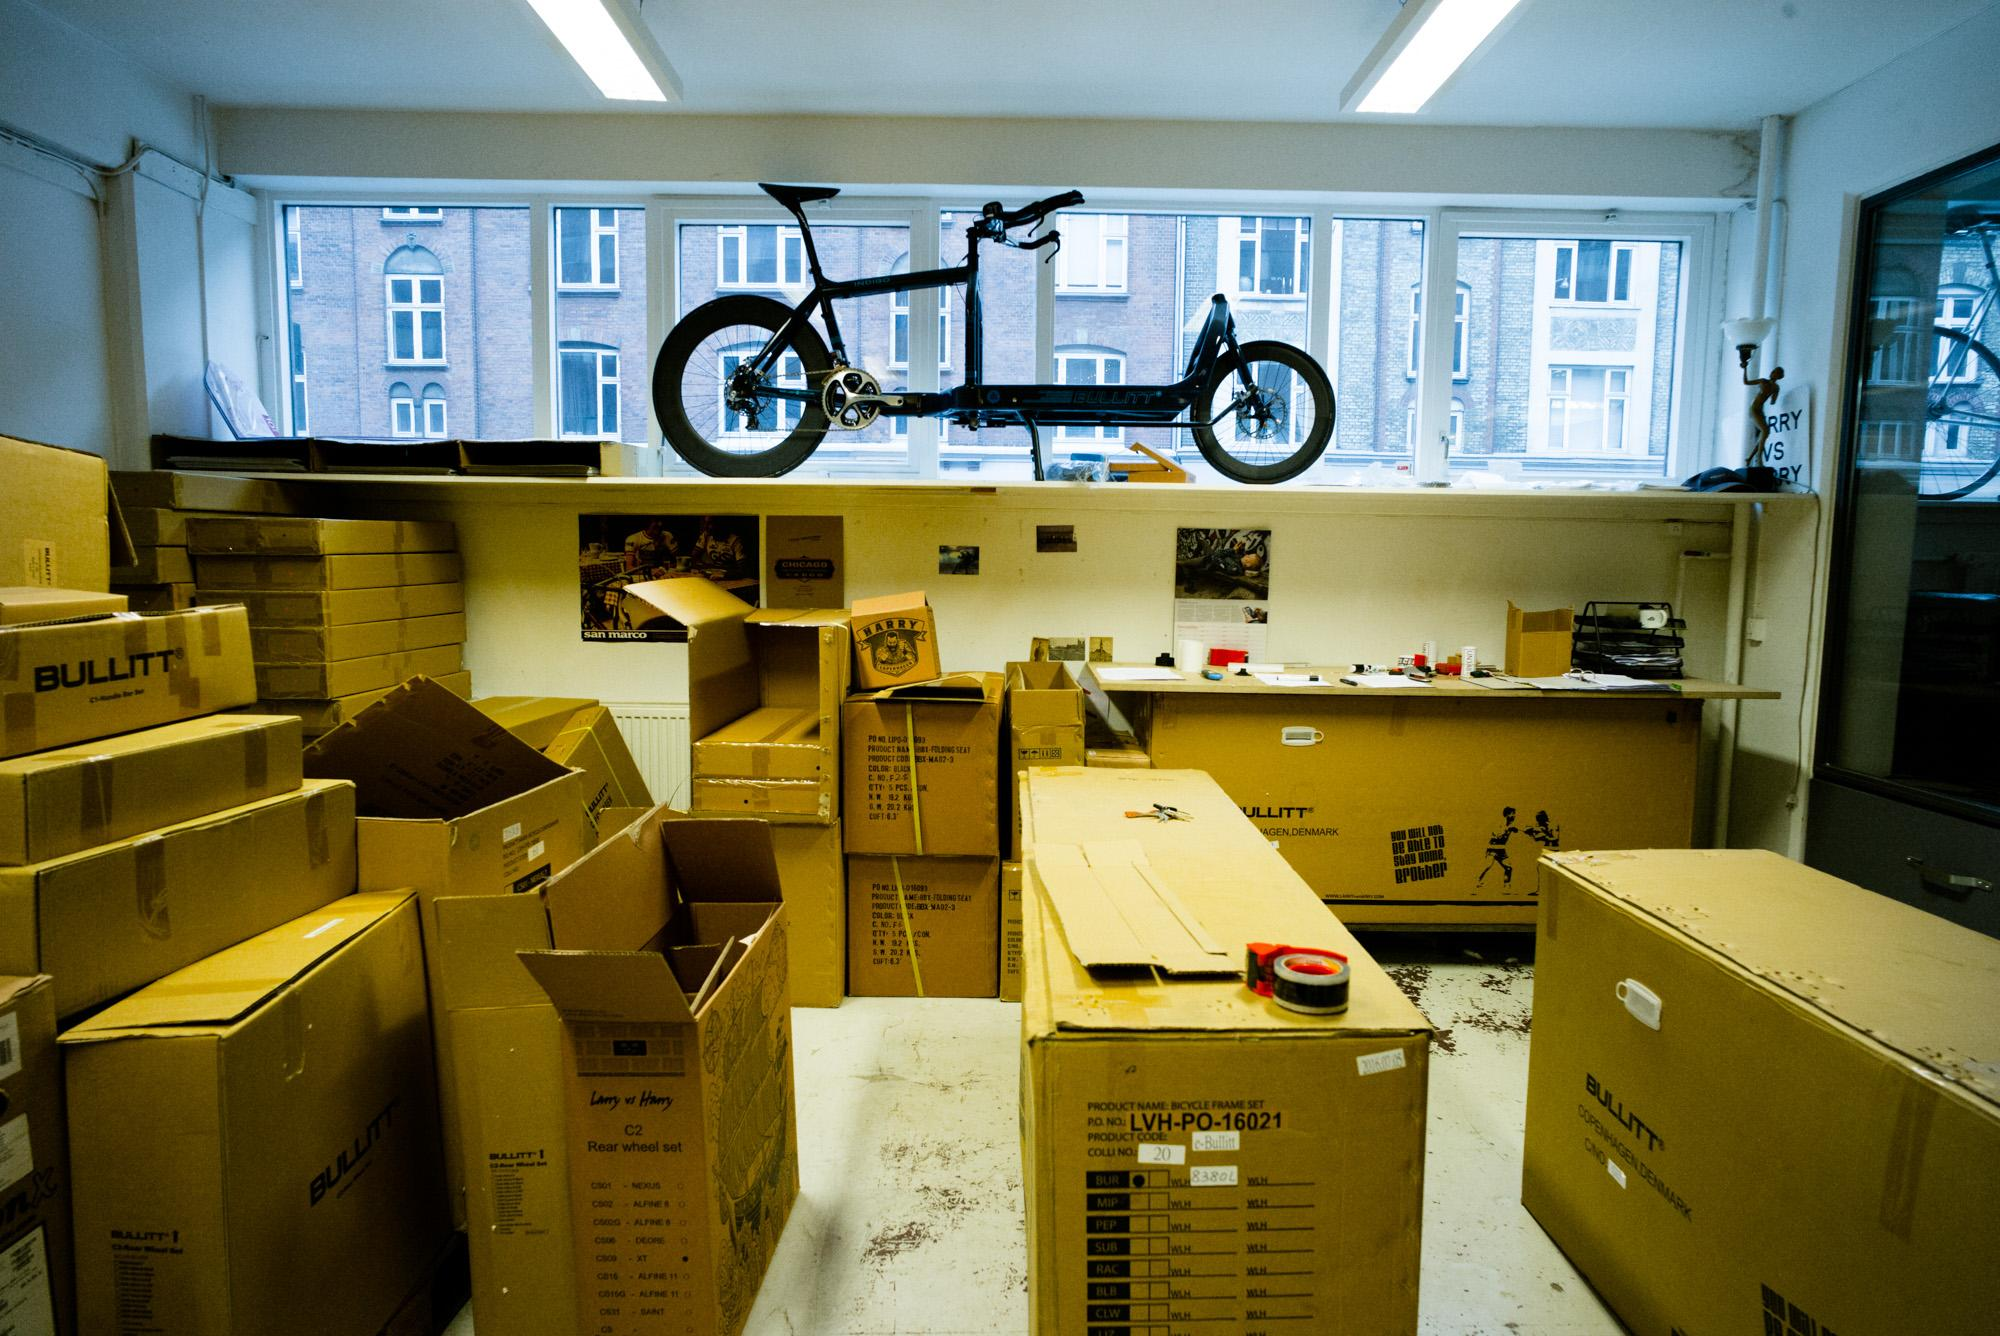 The worlds fastest cargo bike looks down at some orders being pr